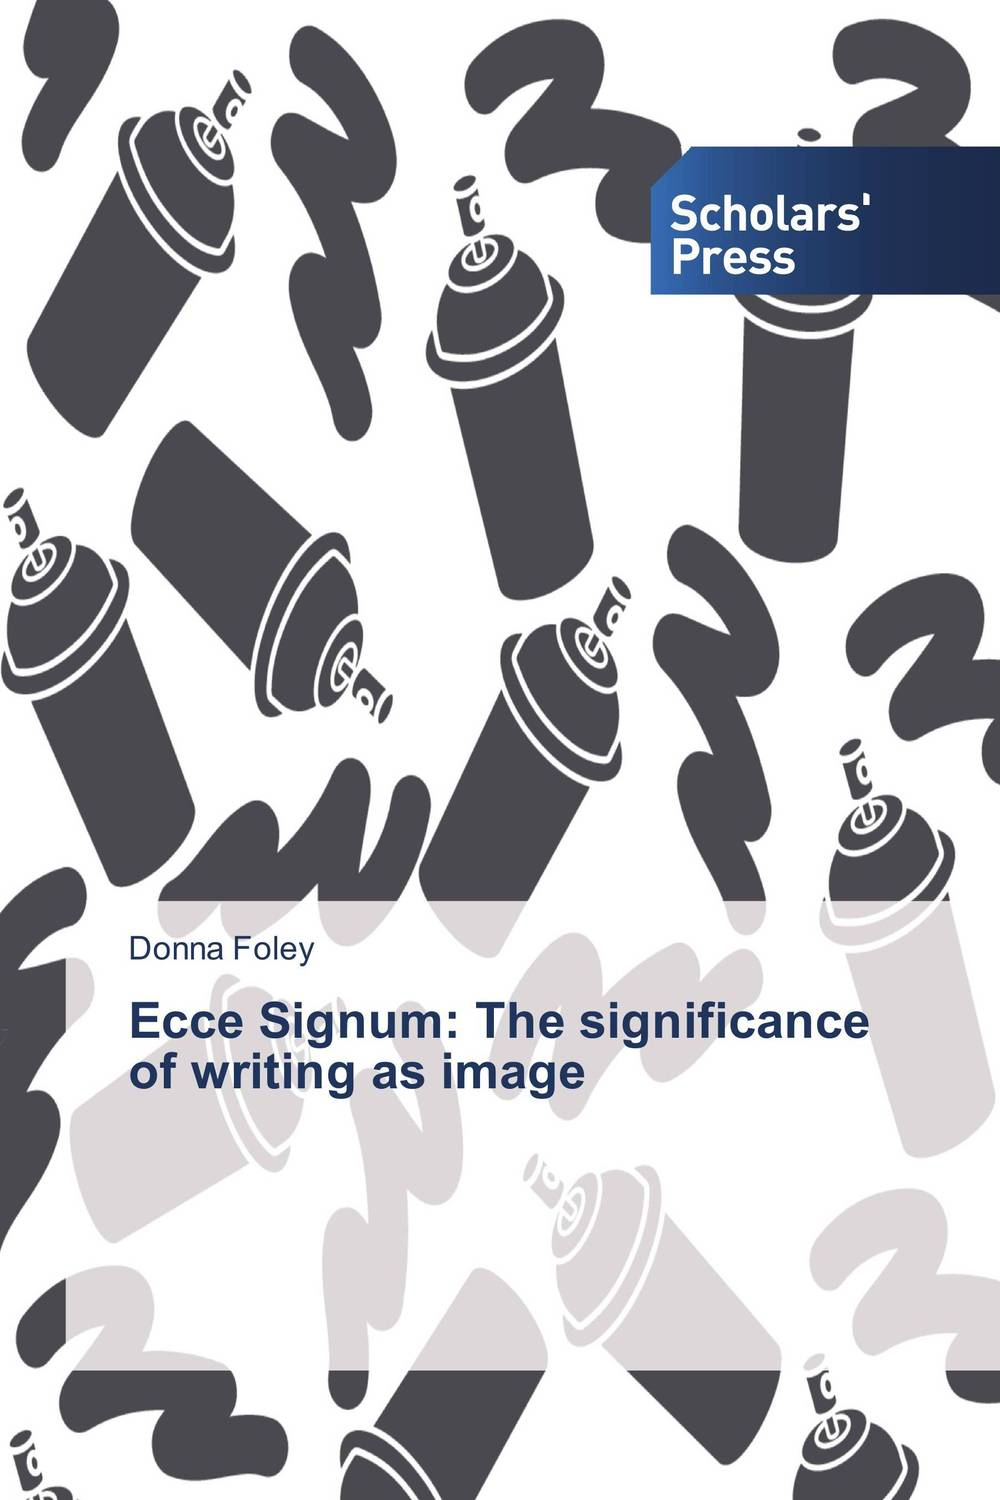 Ecce Signum: The significance of writing as image